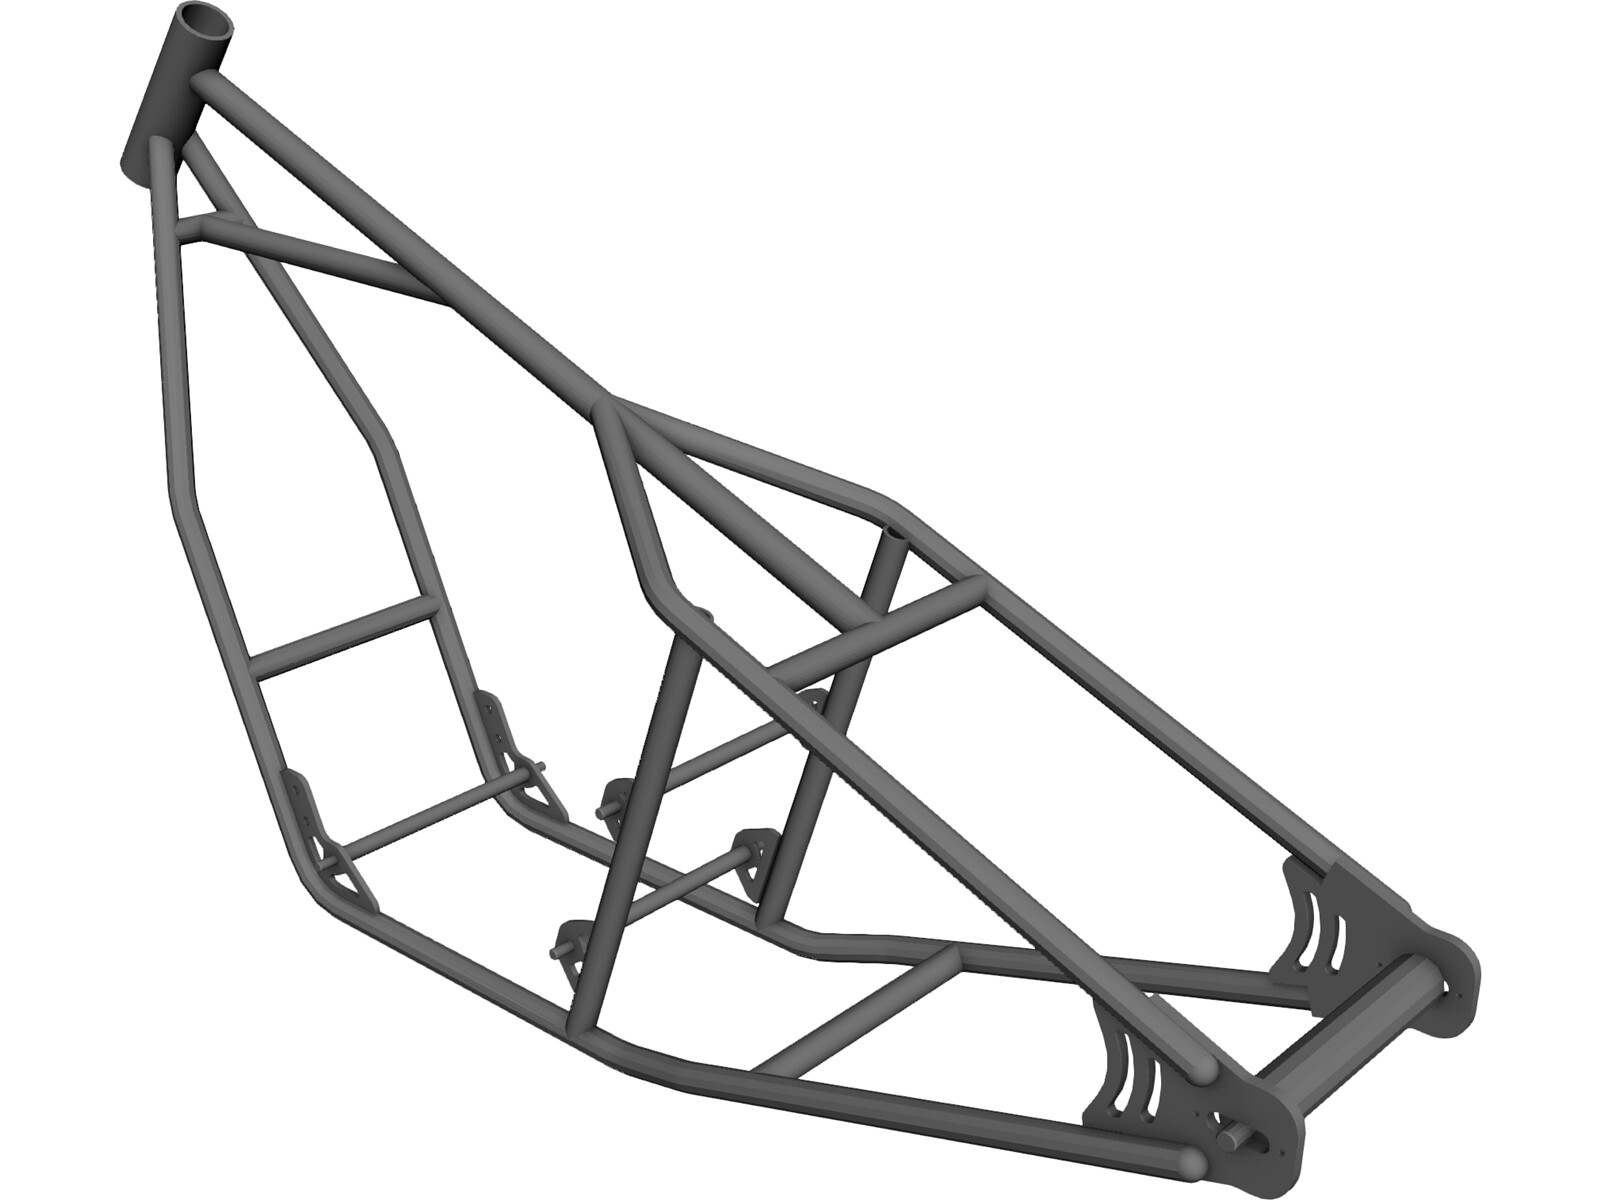 Honda CB750 Motorcycle Frame 3D Model - 3D CAD Browser